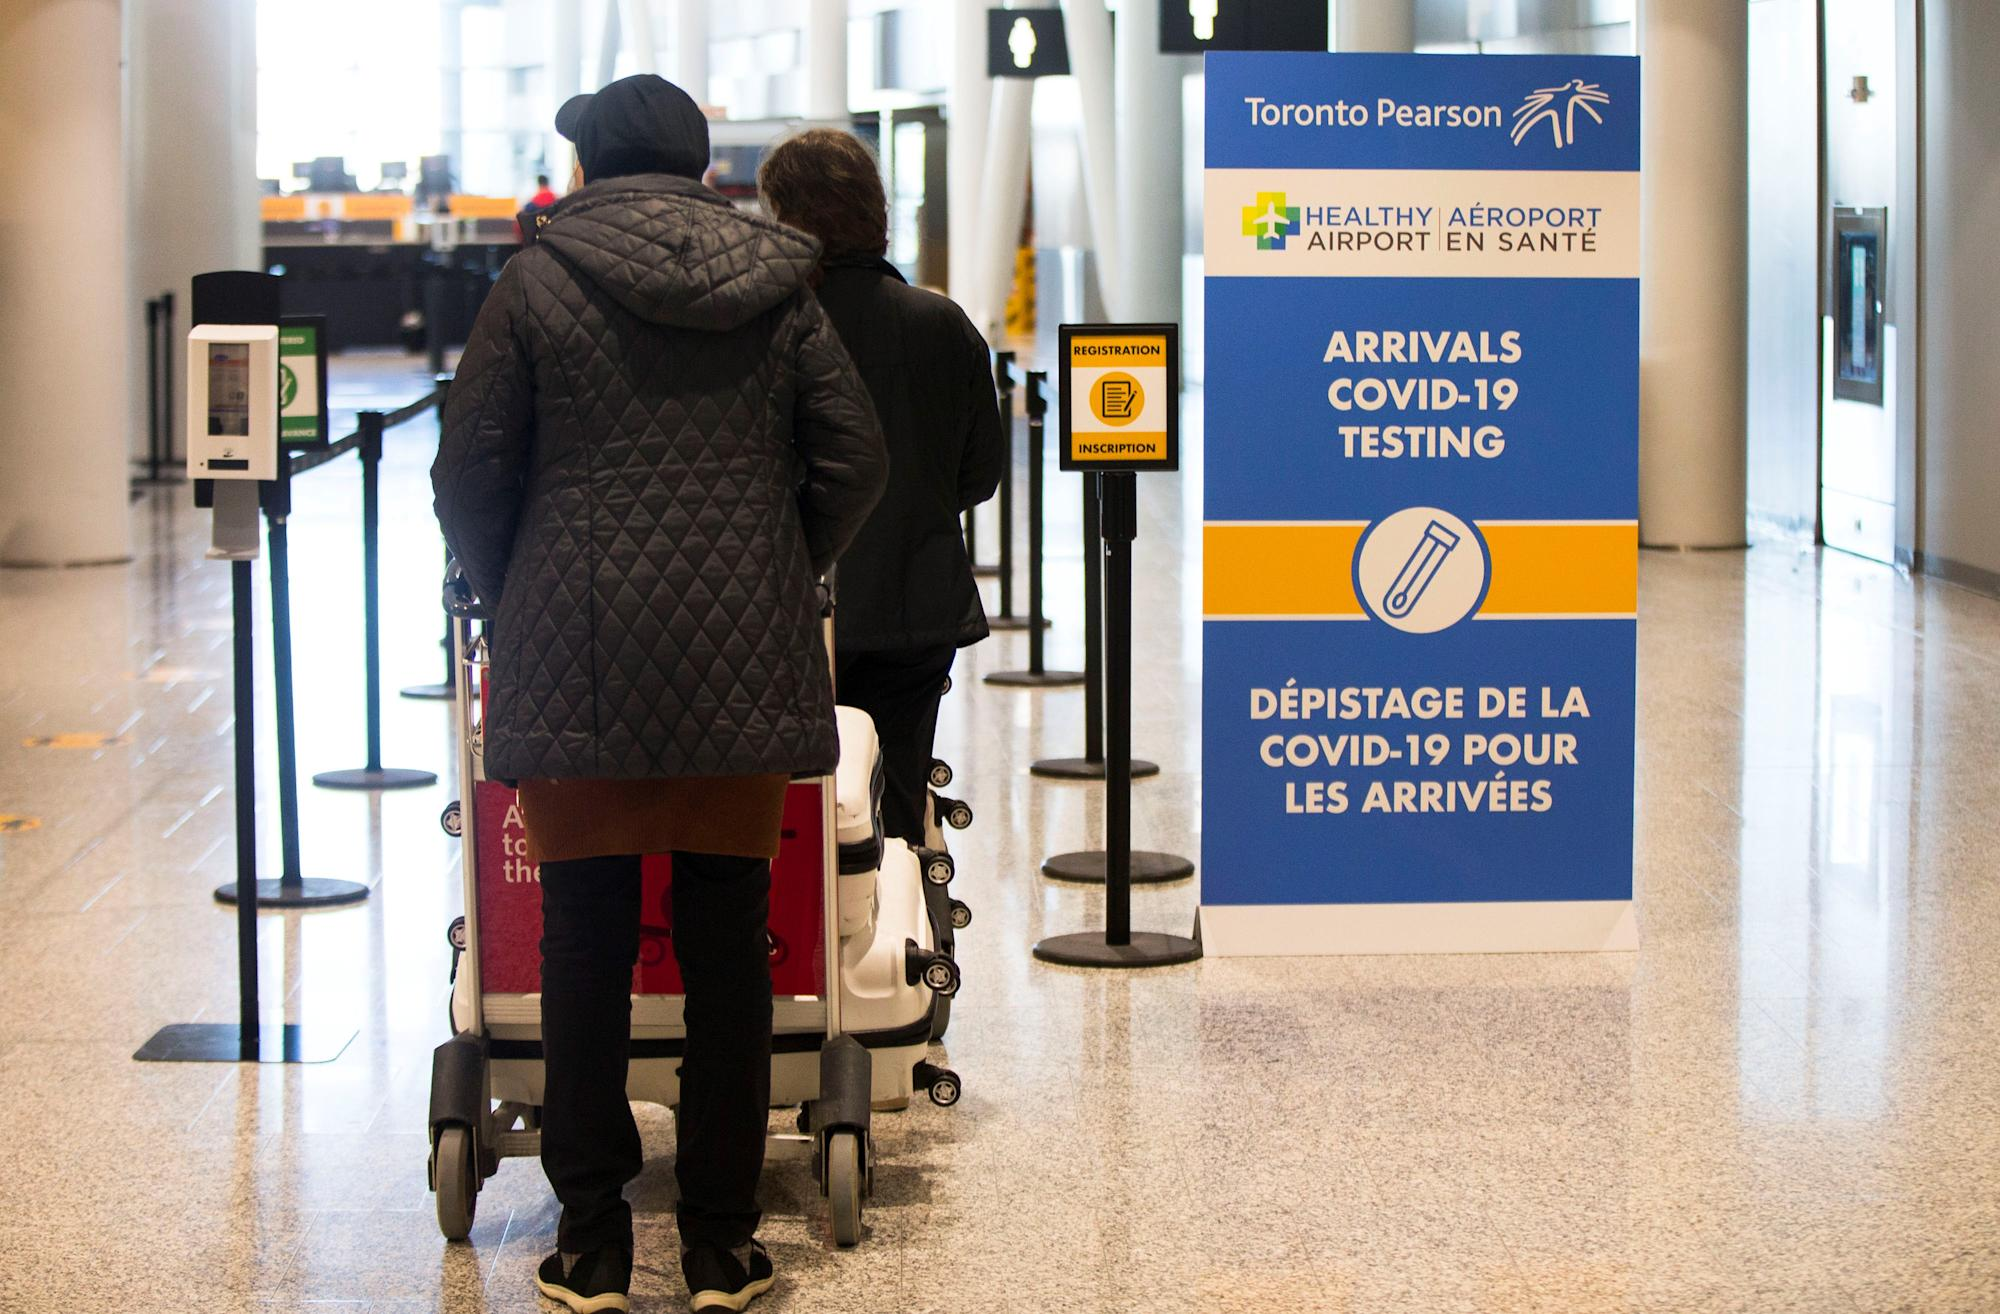 The results are in: Ontario COVID-19 testing pilot program at Toronto Pearson caught nearly 150 infected travellers